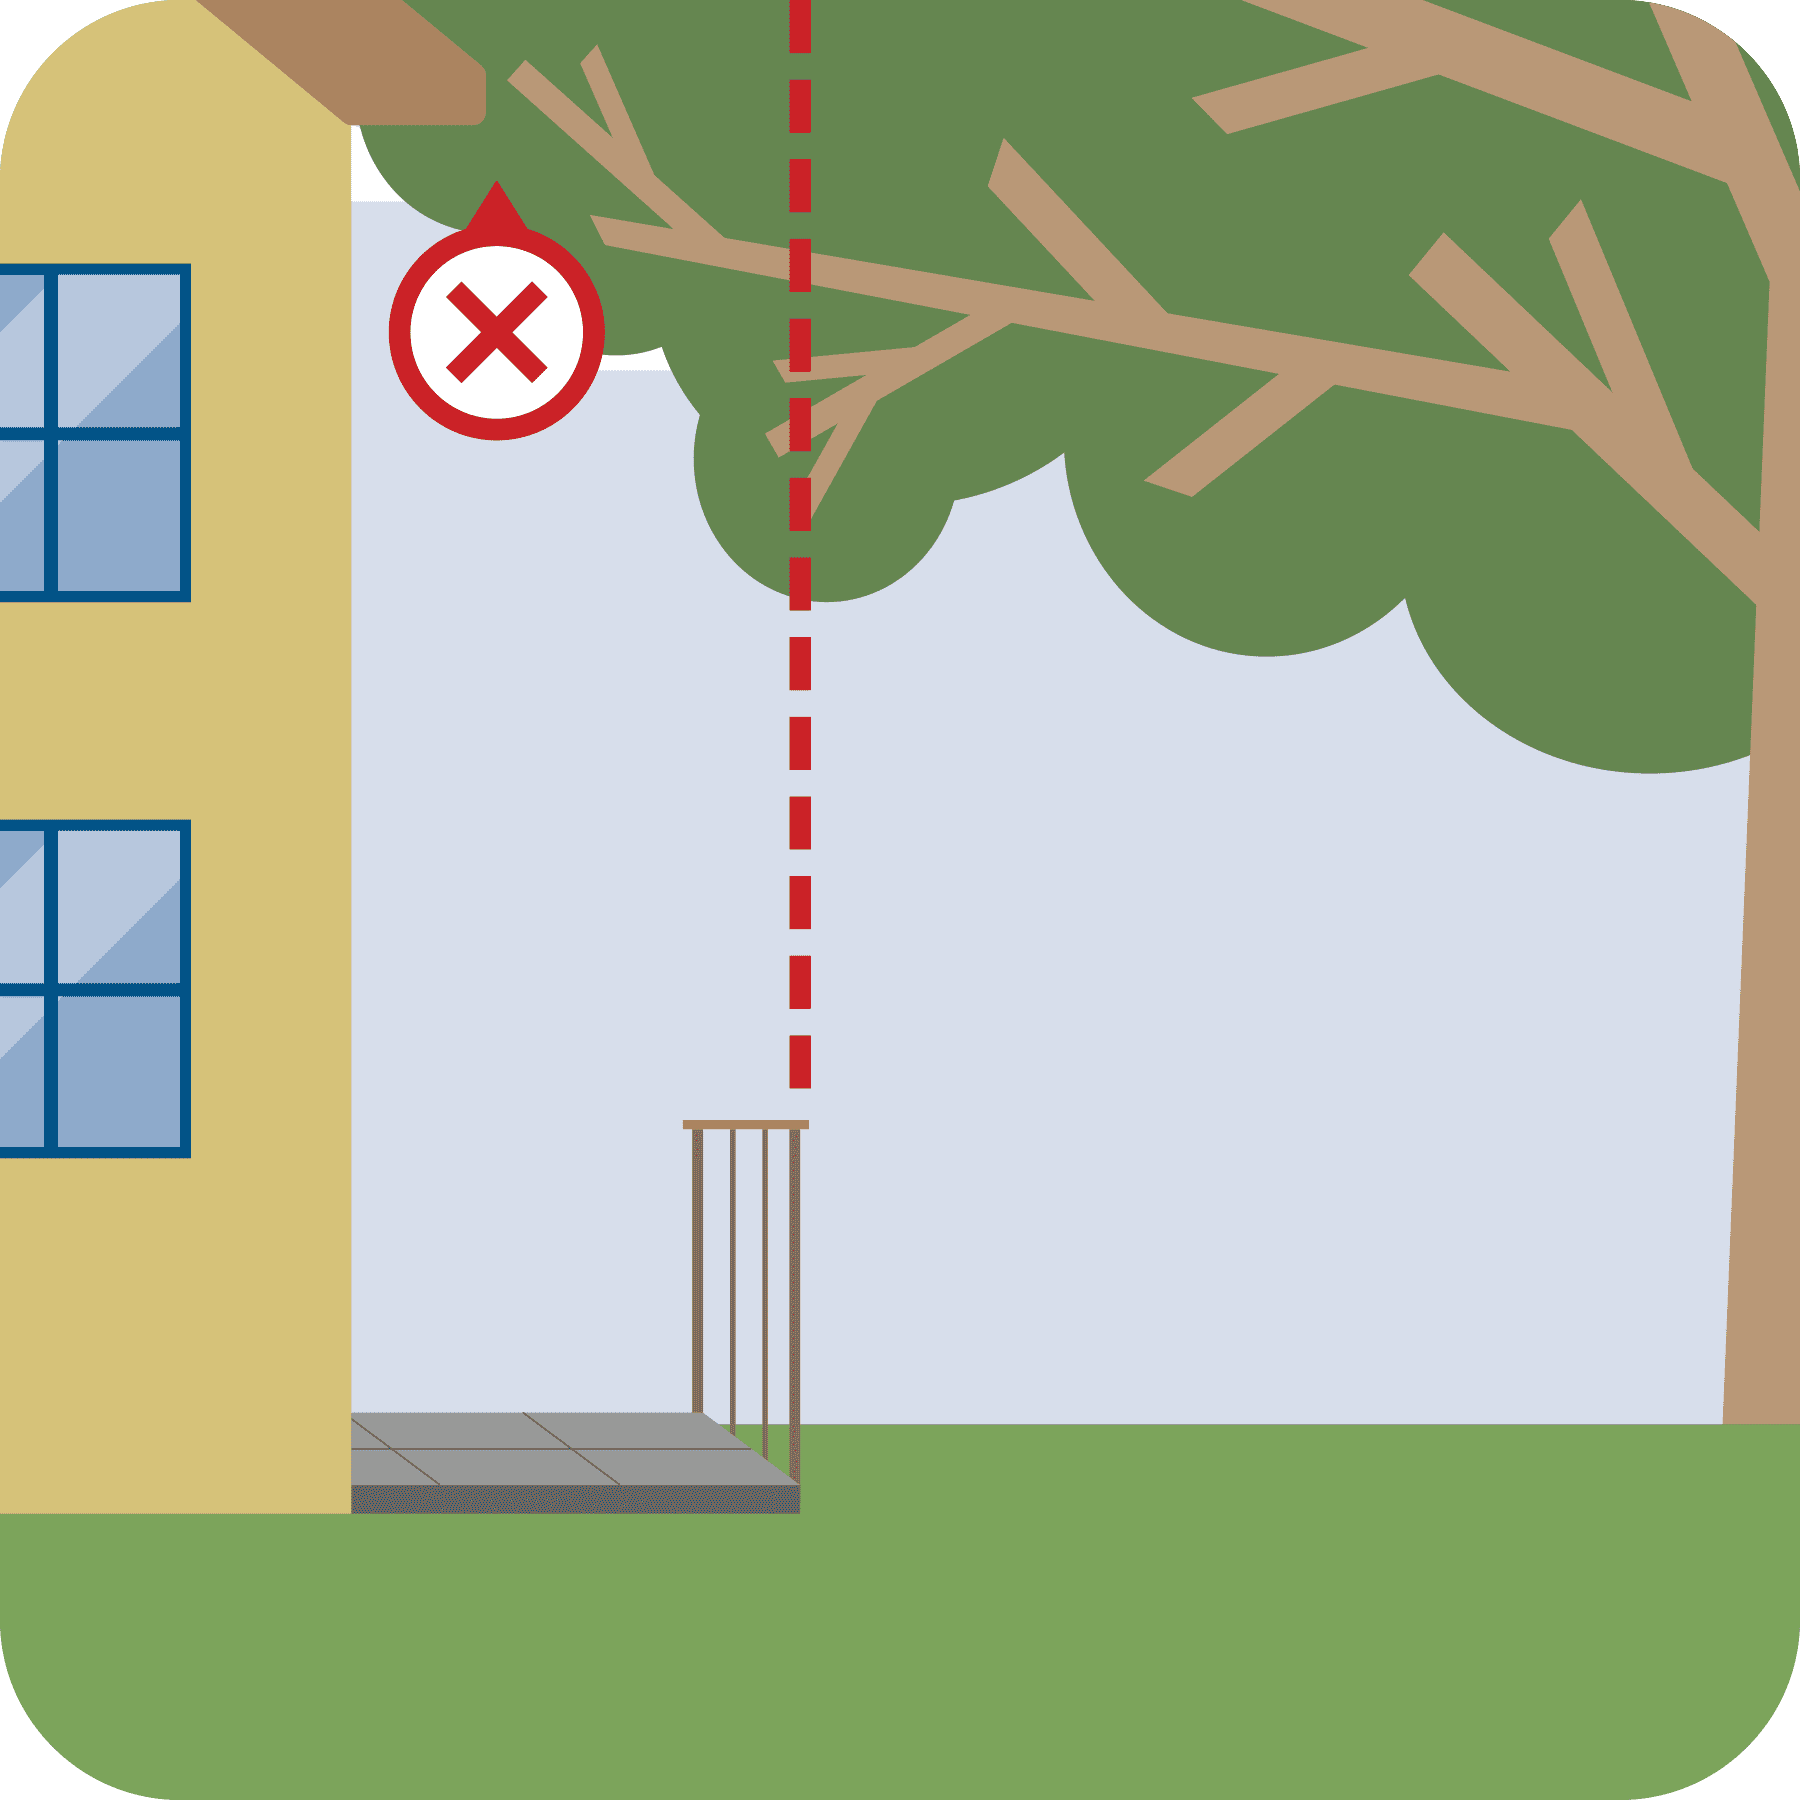 Red line to show tree branches touching the house is not good.